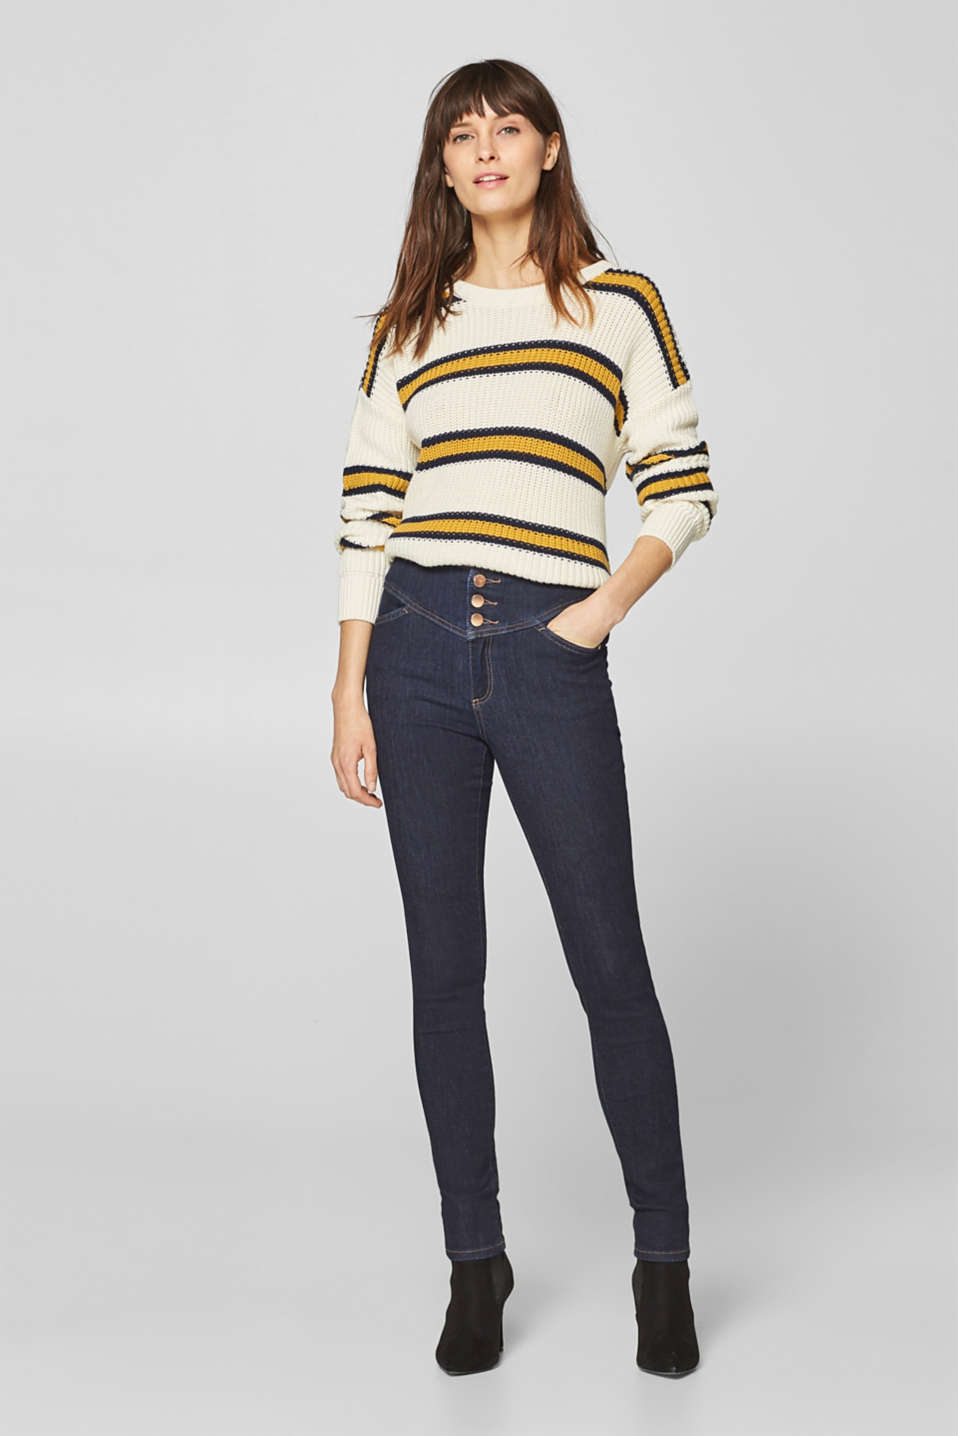 Esprit - Shaping jeans in dark denim with a deep waistband